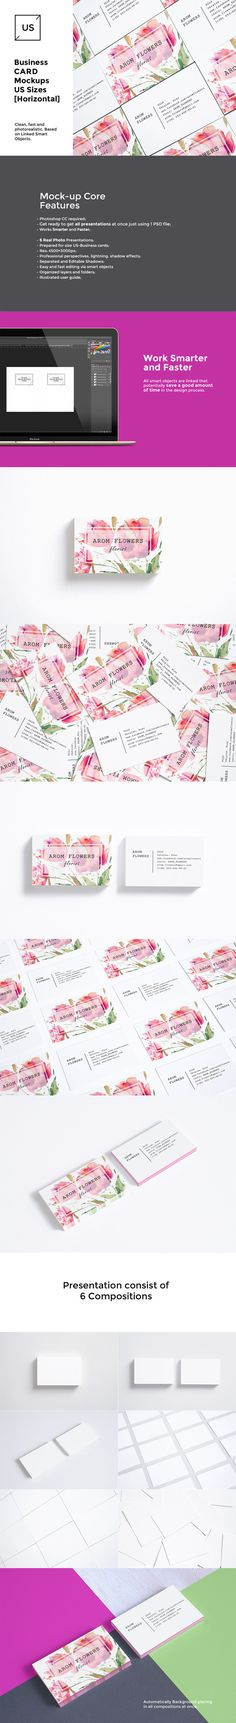 US Business Cards Mockups Set by itembridge creative store on @creativemarket